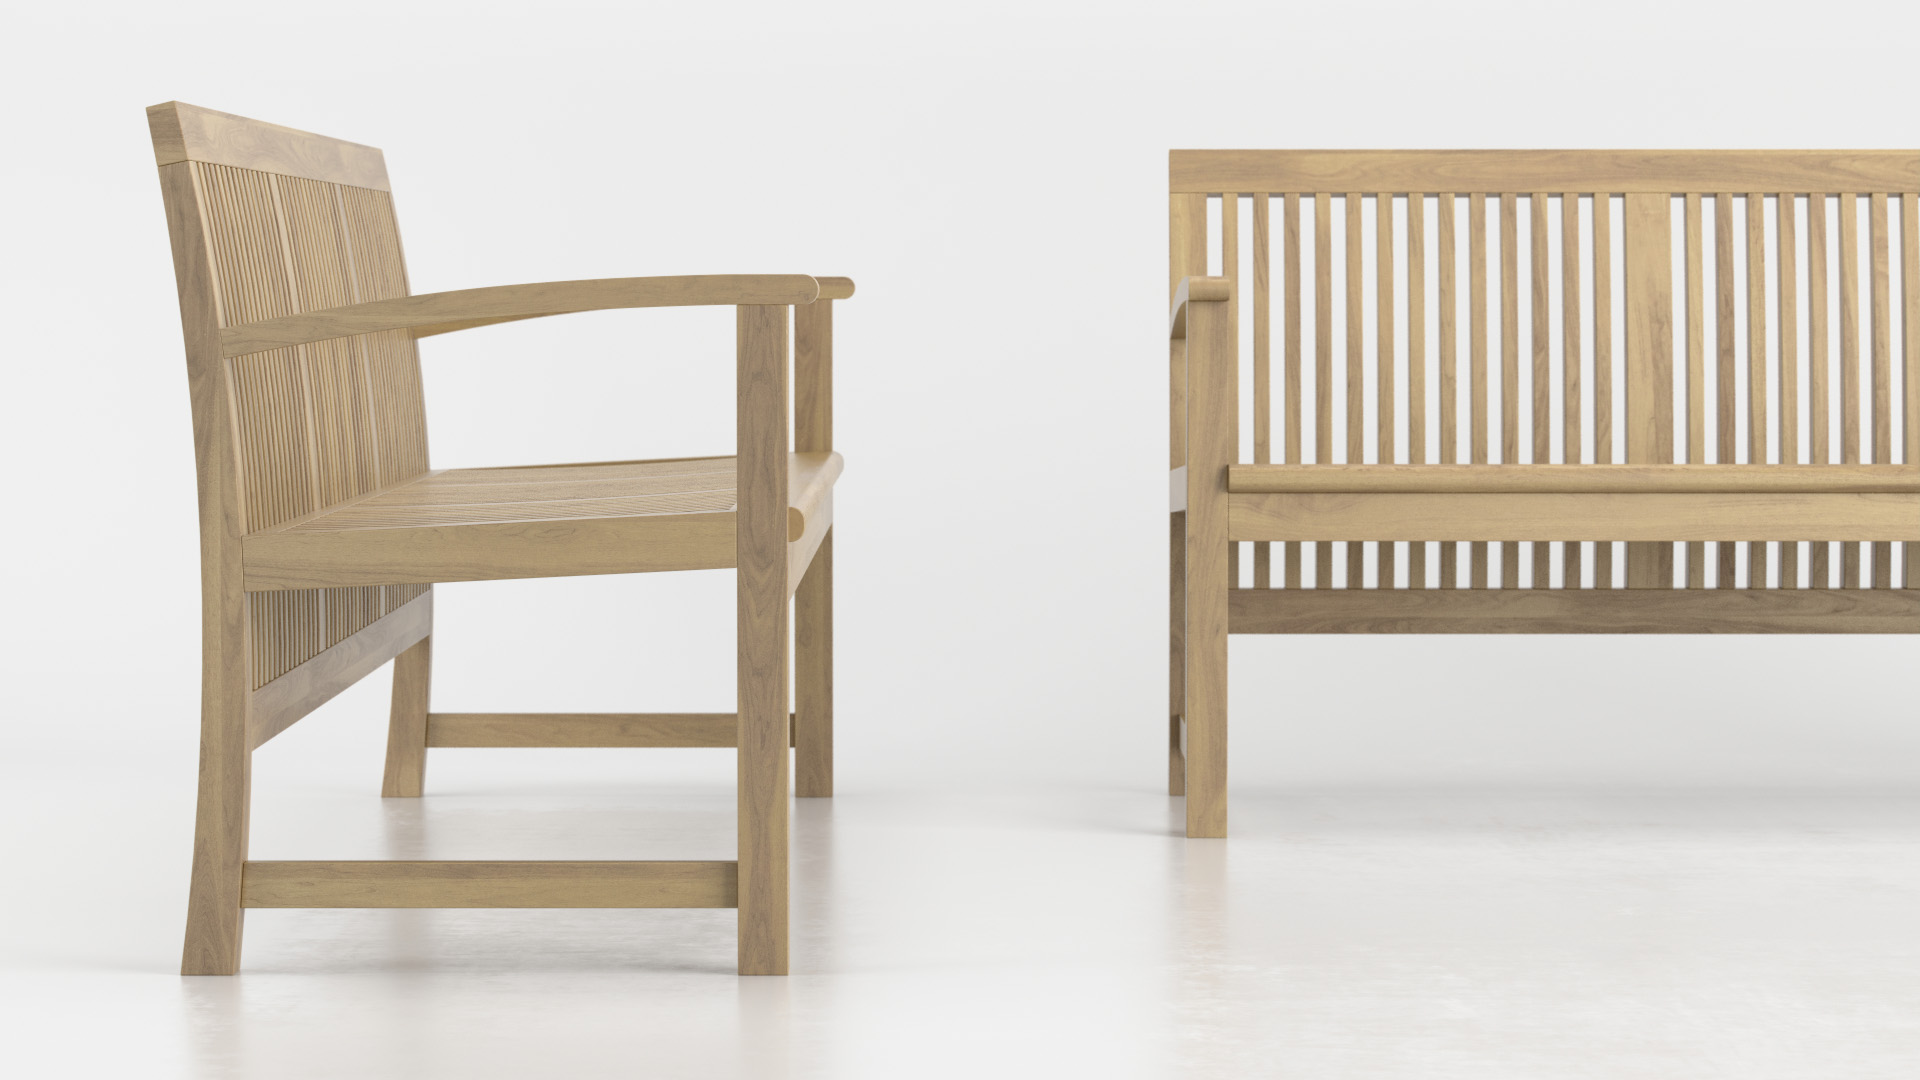 Tribu_Praslin_Bench_WhiteSet_01_0002